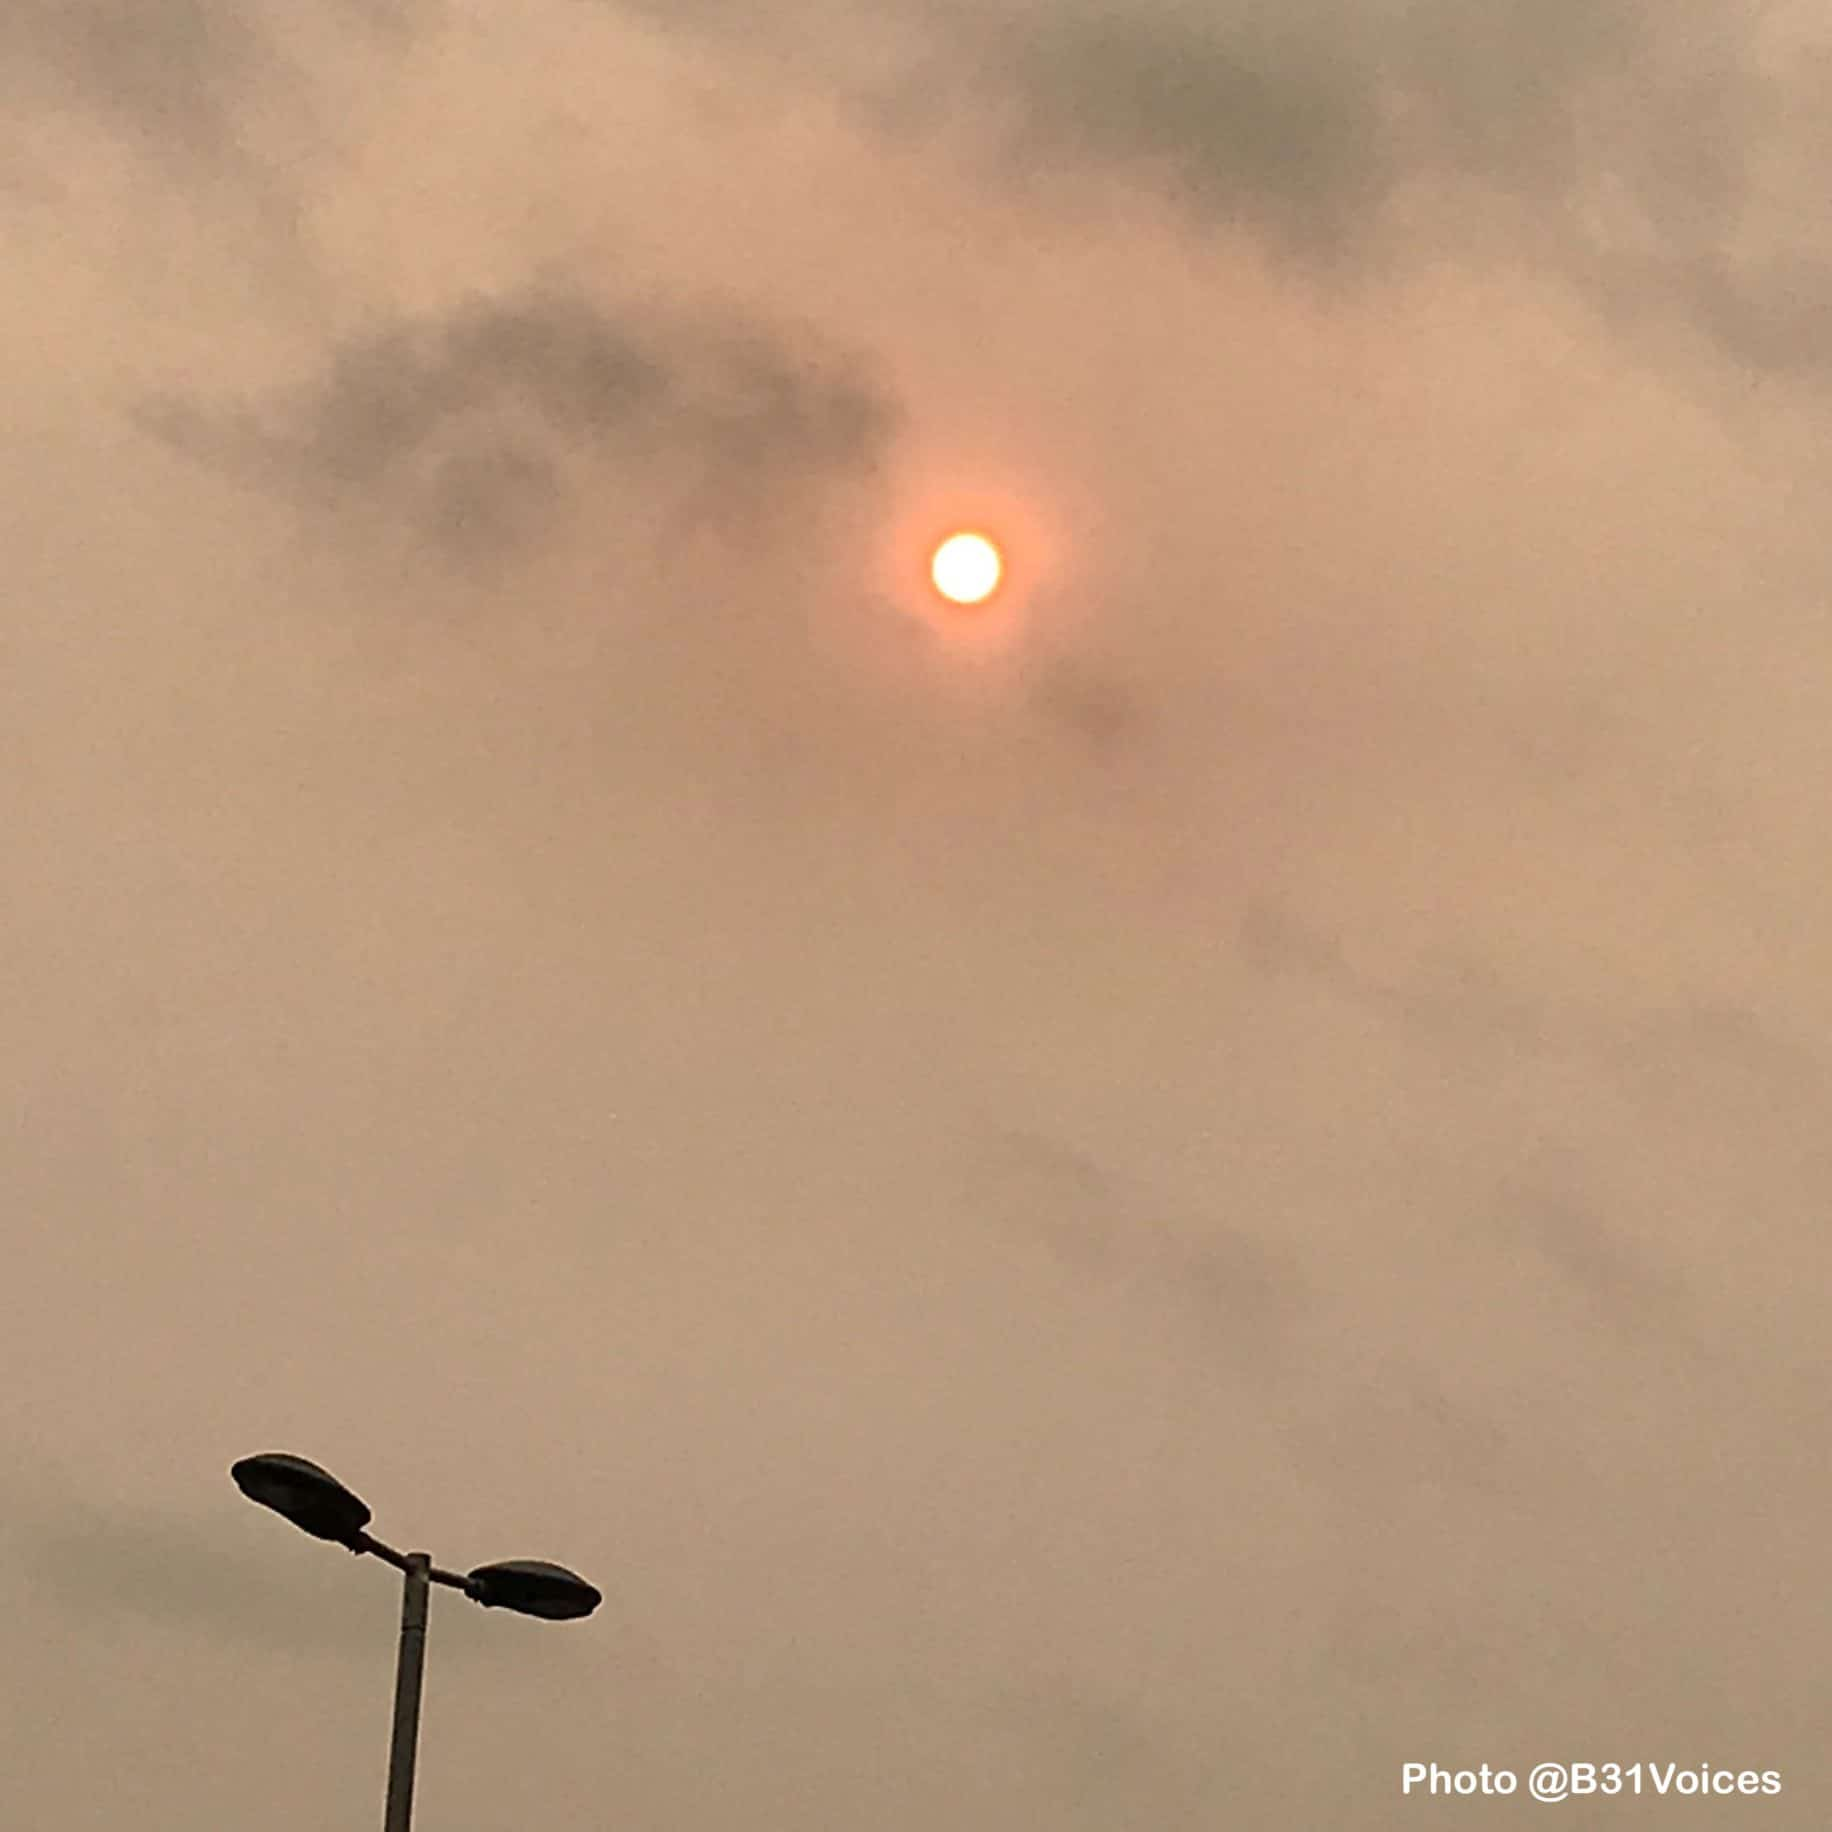 Ophelia Turns the Sun 'Red' in UK